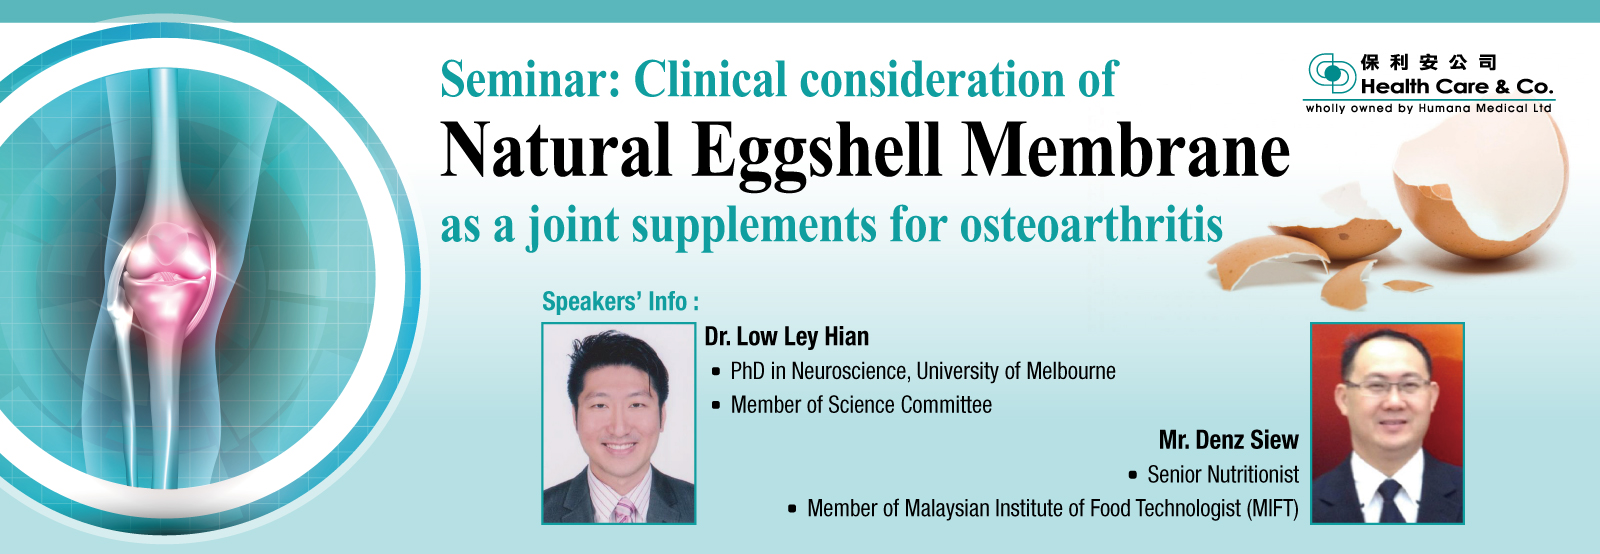 Seminar: Clinical consideration of Natural Eggshell Membrane as a joint supplements for osteoarthritis